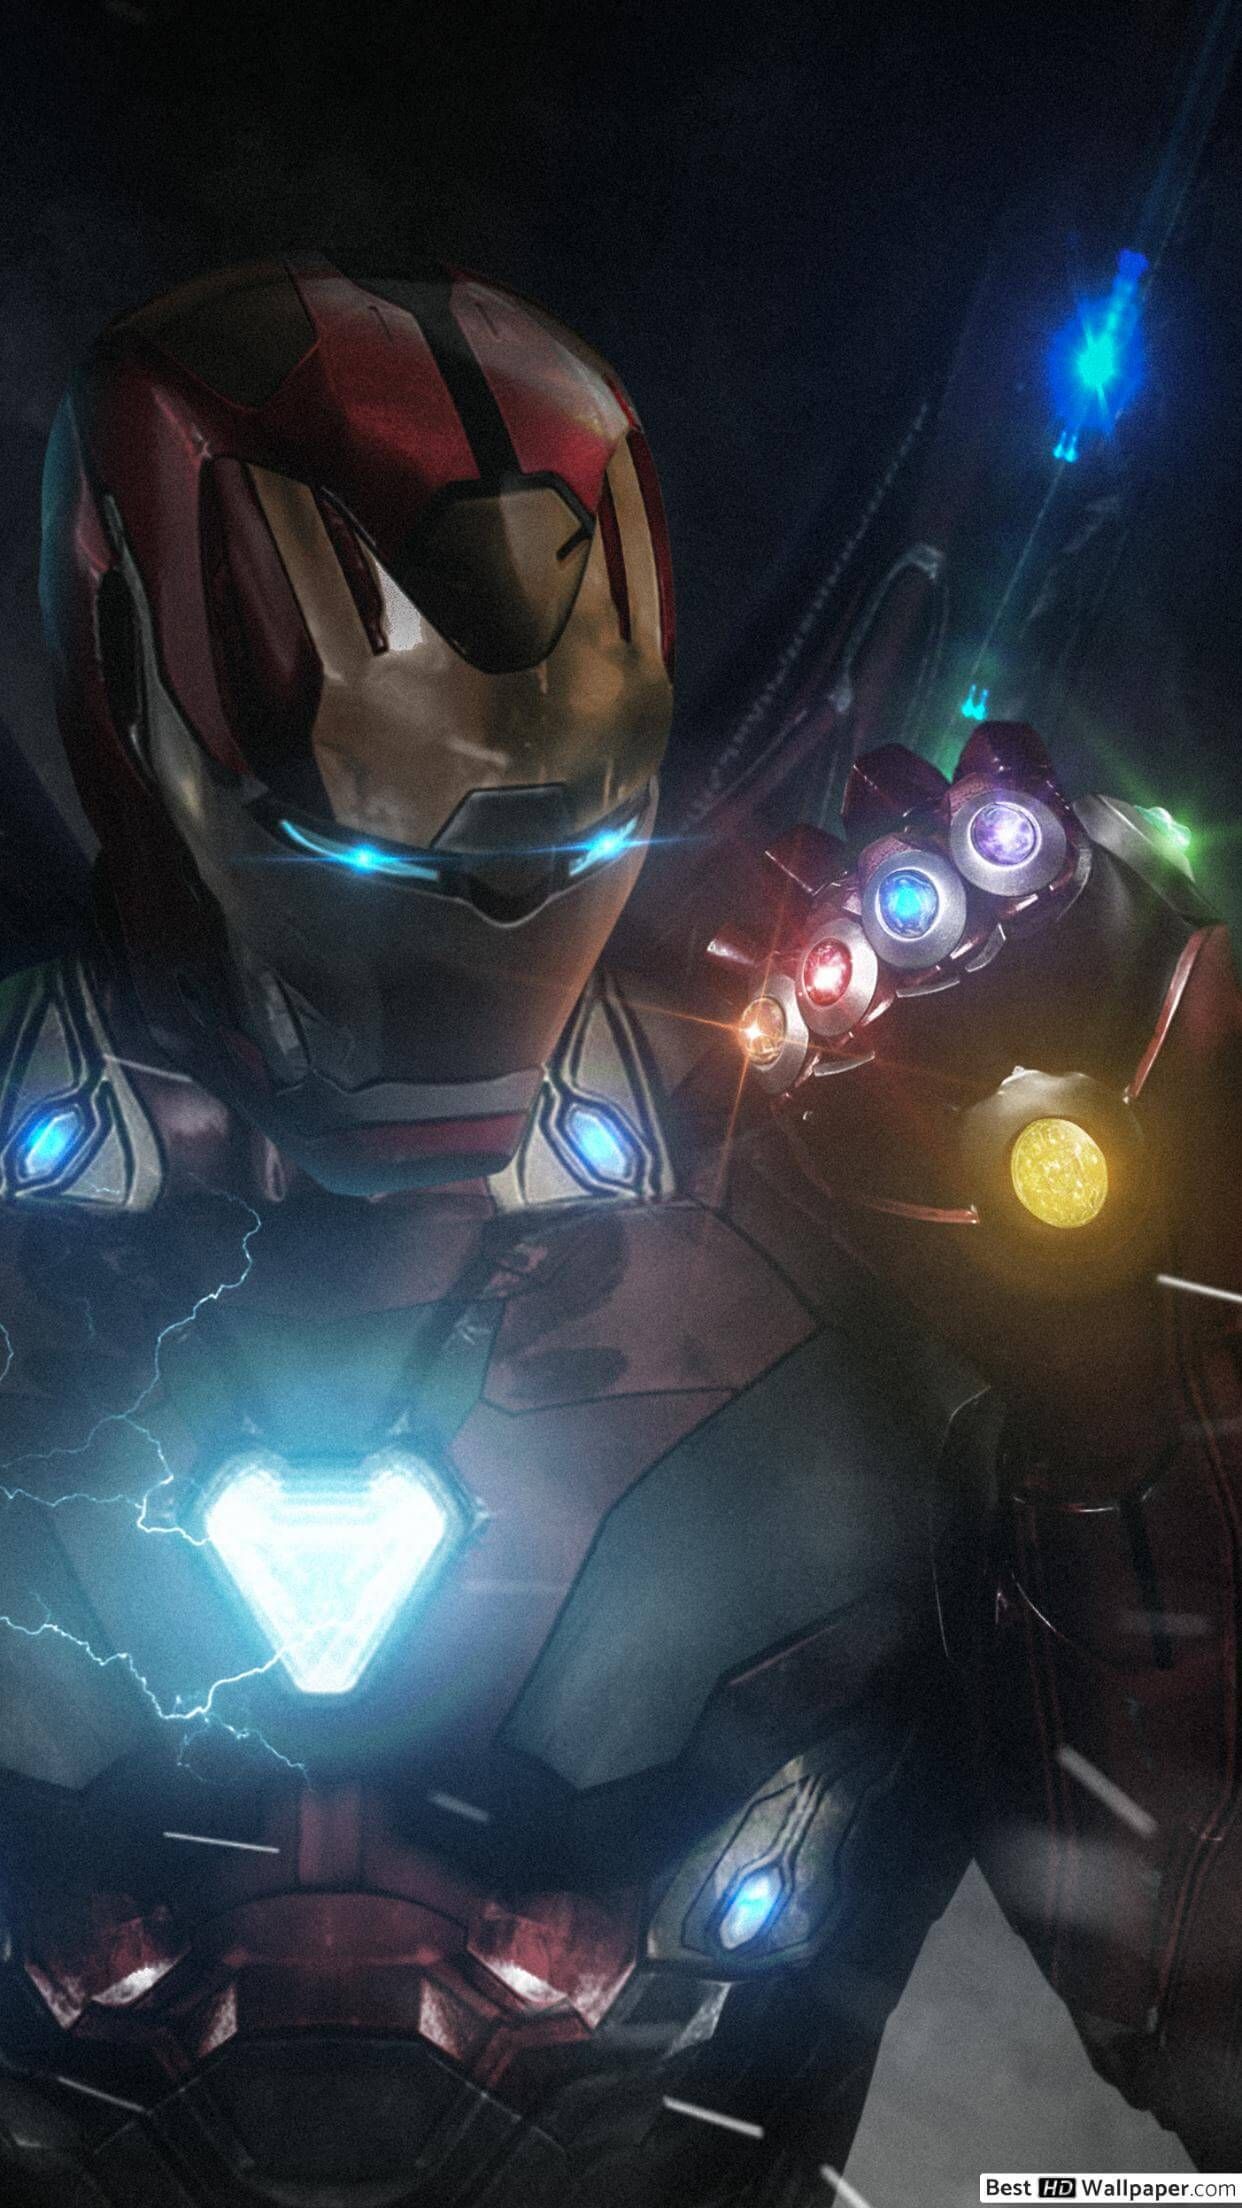 Endgame Avengers 2019 Wallpapers And Background Images Iphone2lovely Yes It Is Avengers Wallpaper Marvel Wallpaper Hd Iron Man Hd Wallpaper